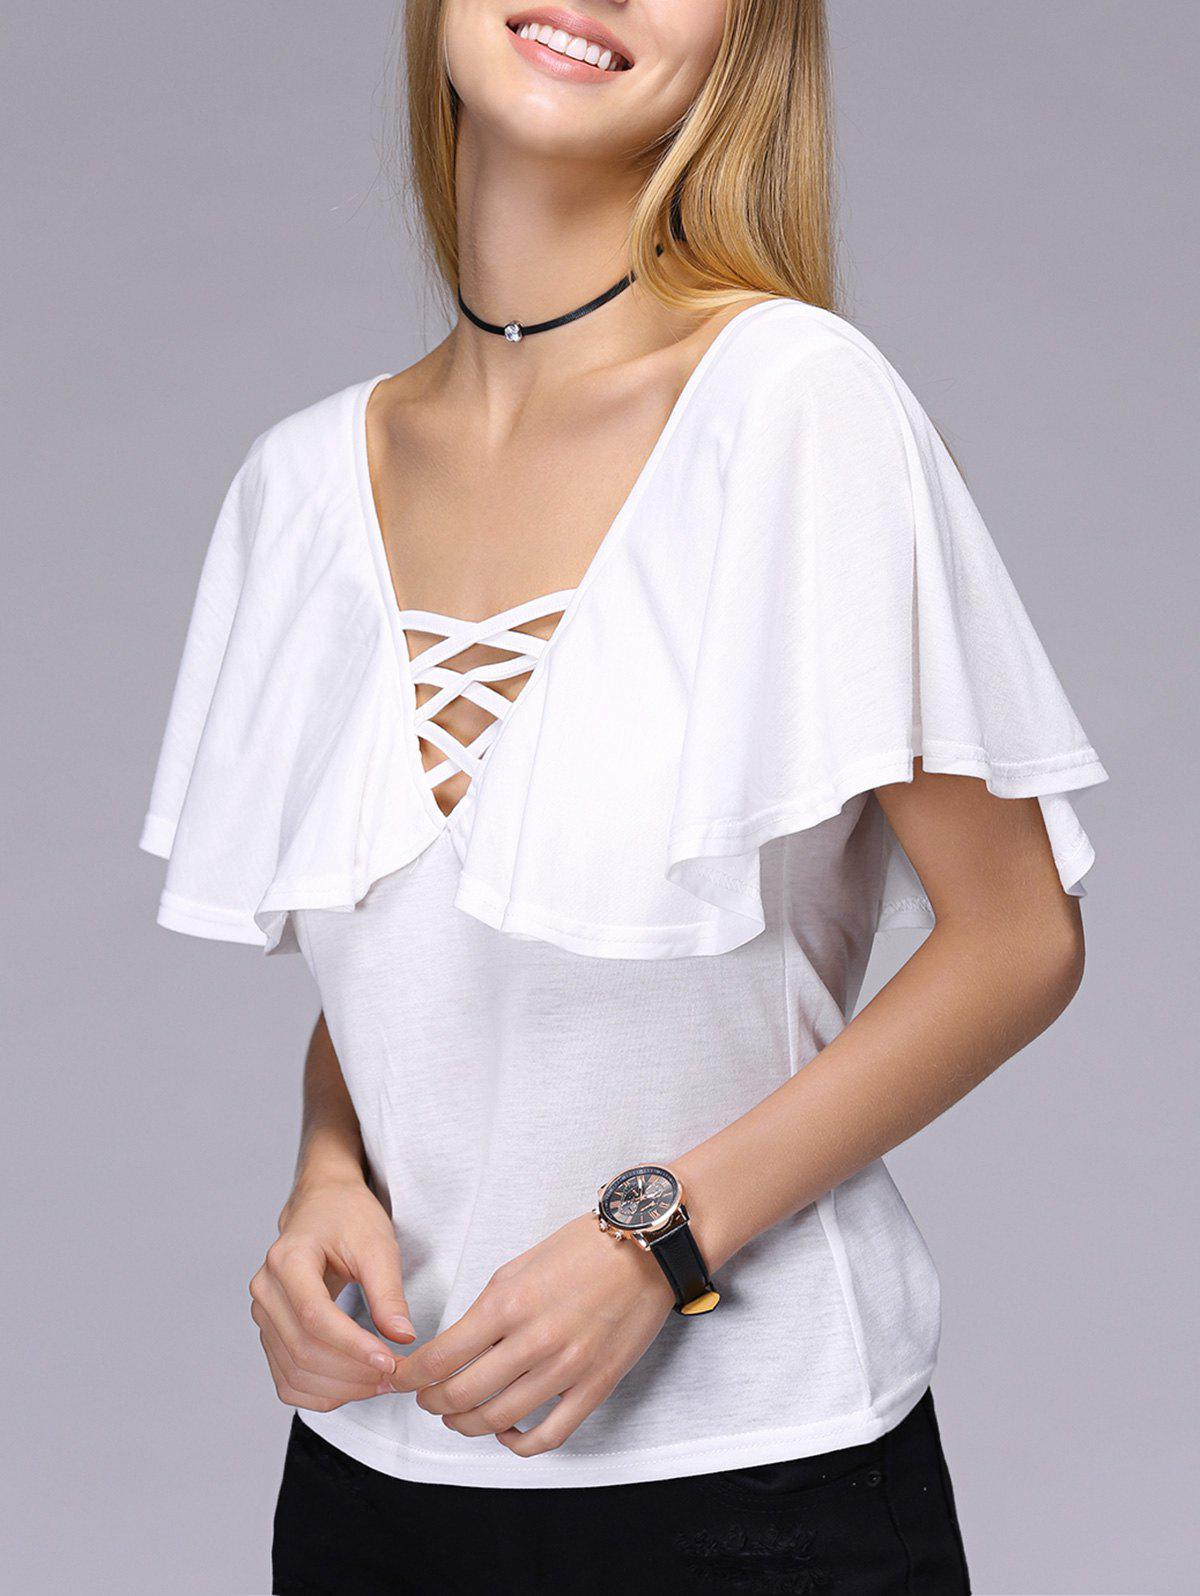 Stylish Short Sleeve Hollow Out Backless T-Shirt For Women